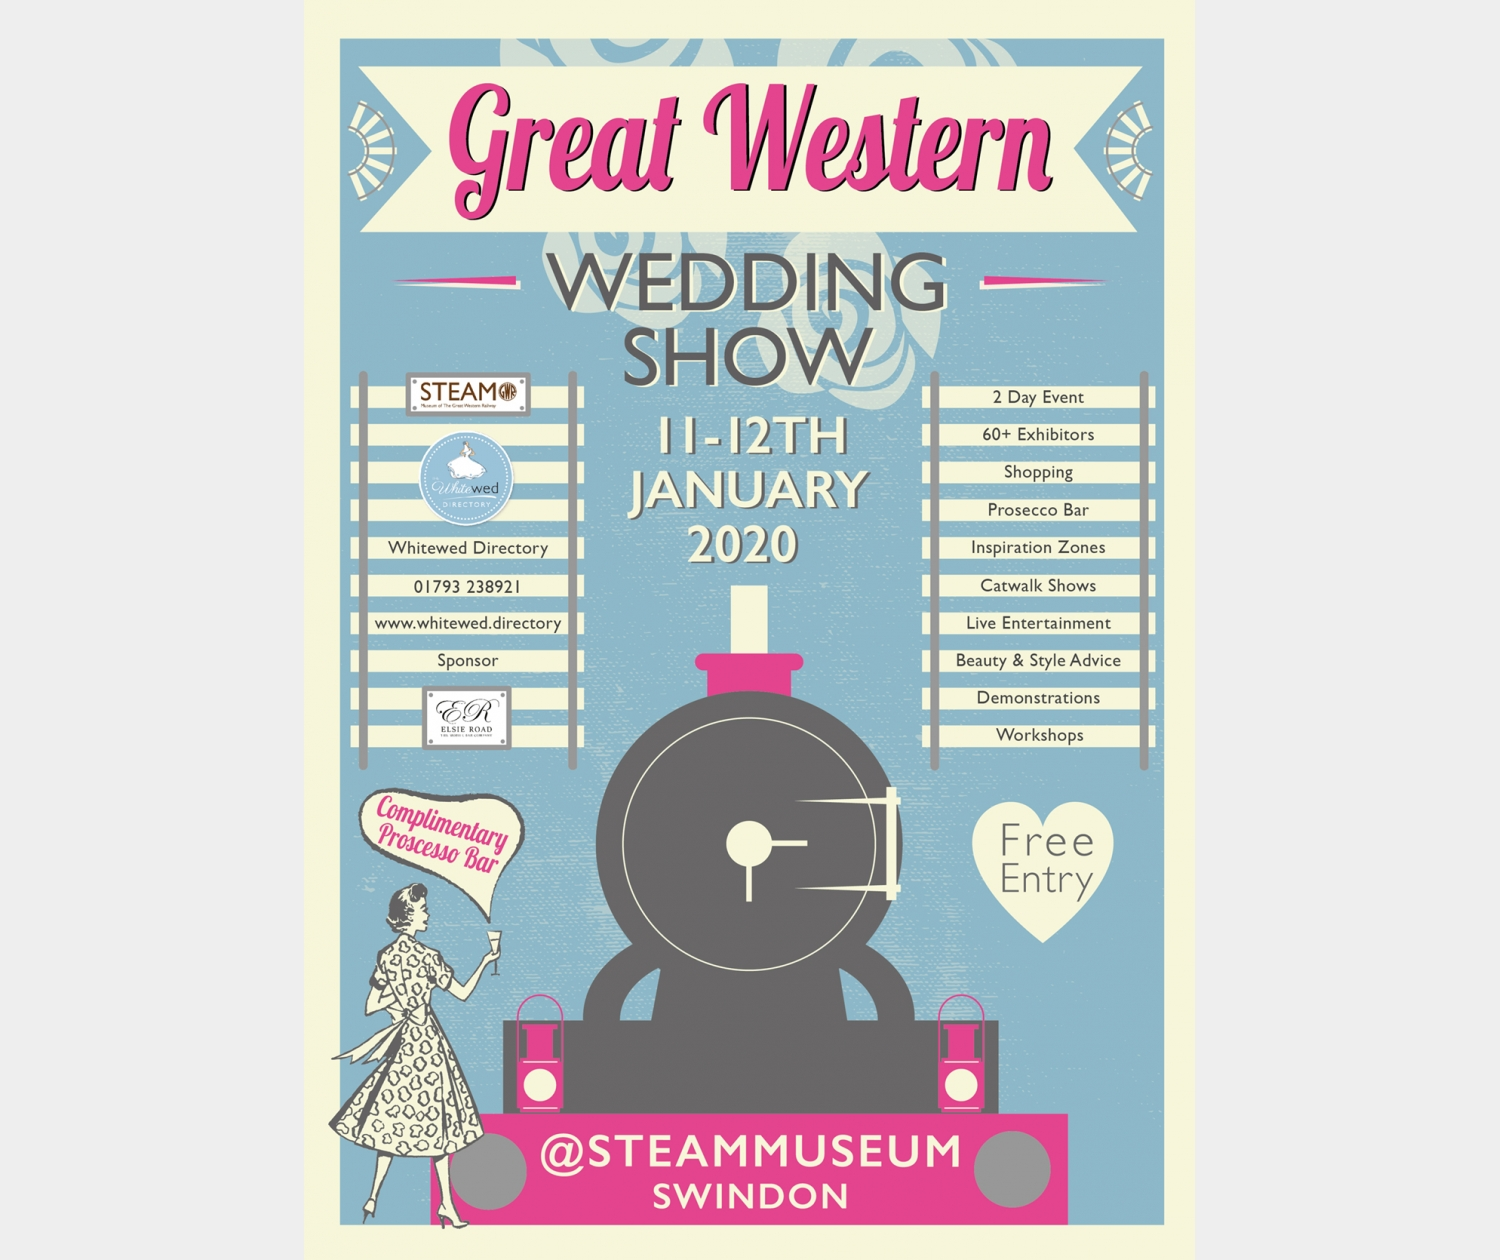 The Great Western Wedding Show (#GWWS) at STEAM